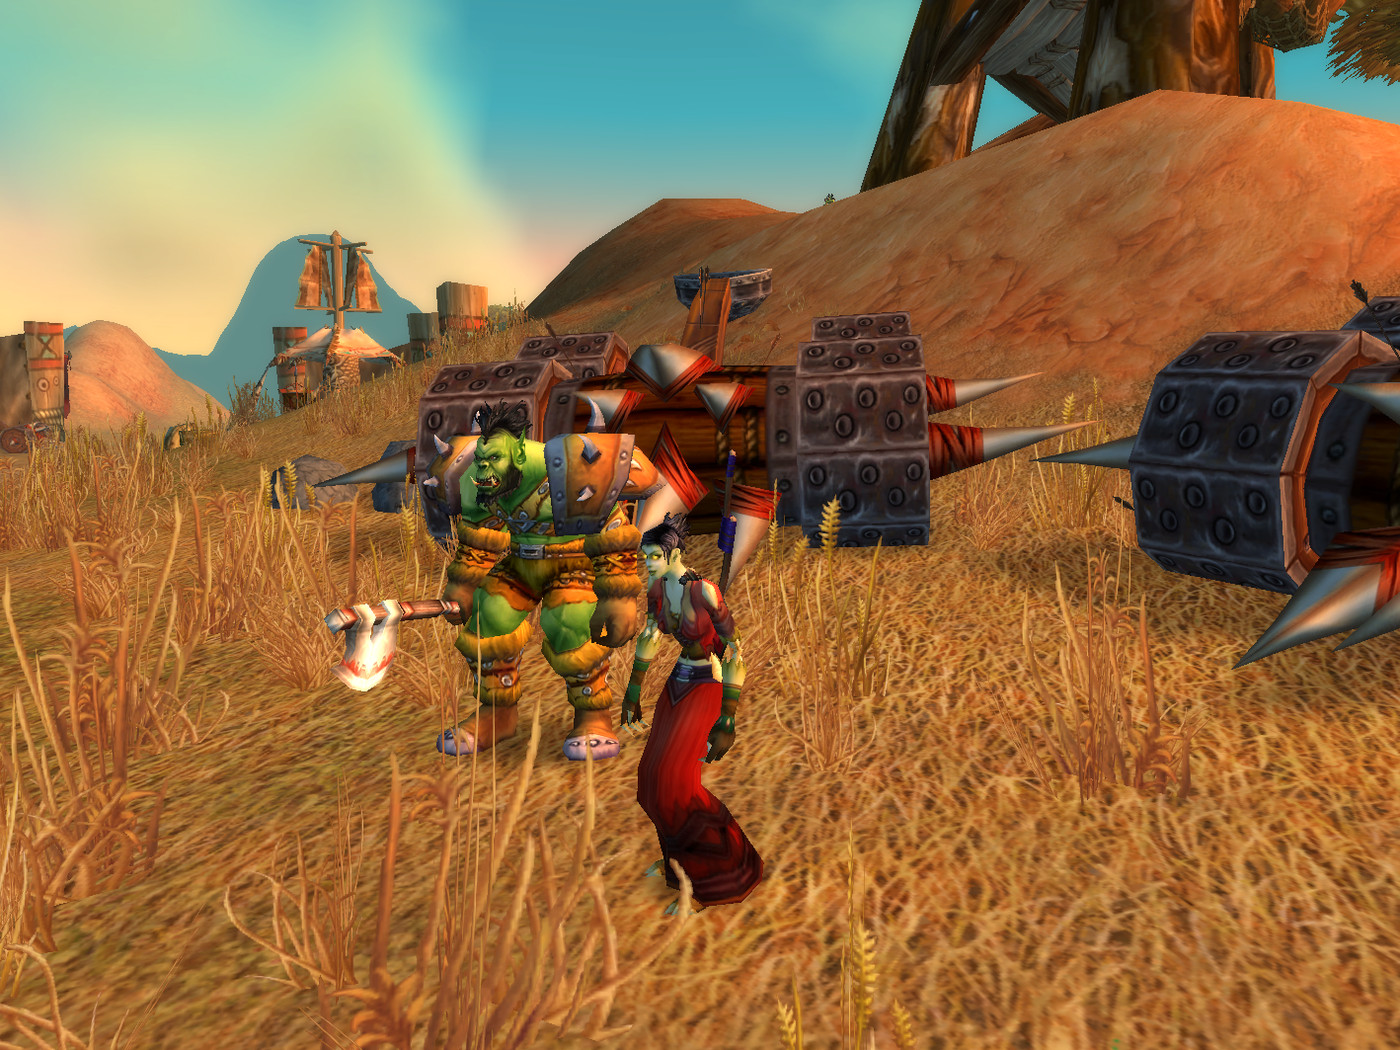 World of Warcraft: Classic will require commitment, patience and